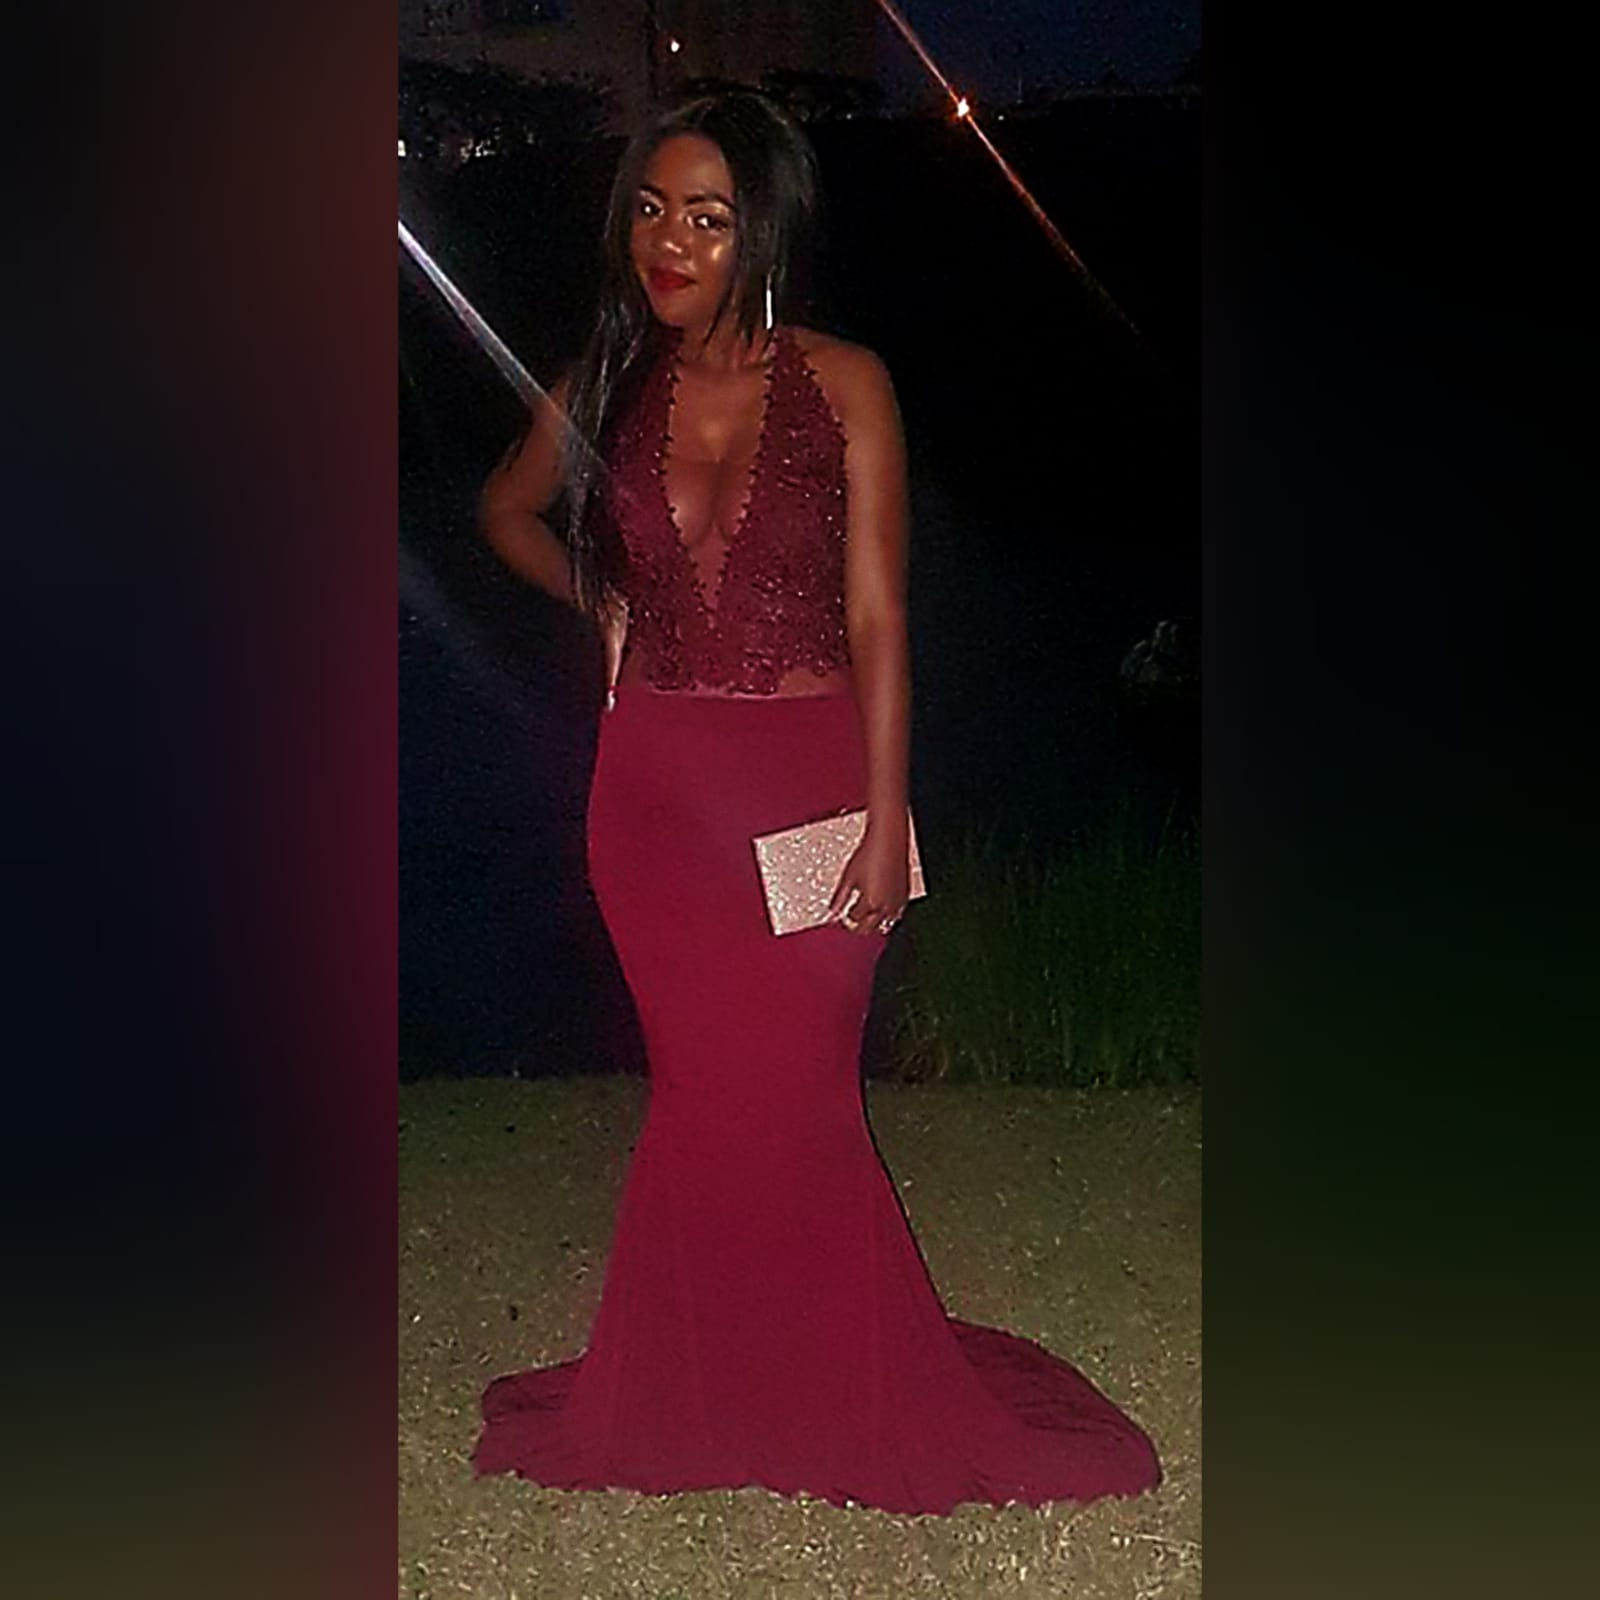 Burgundy illusion bodice soft mermaid prom dress 6 burgundy illusion bodice, soft mermaid prom dress. With a plunging neckline, low v open back with crossed straps detailed with gold beads.